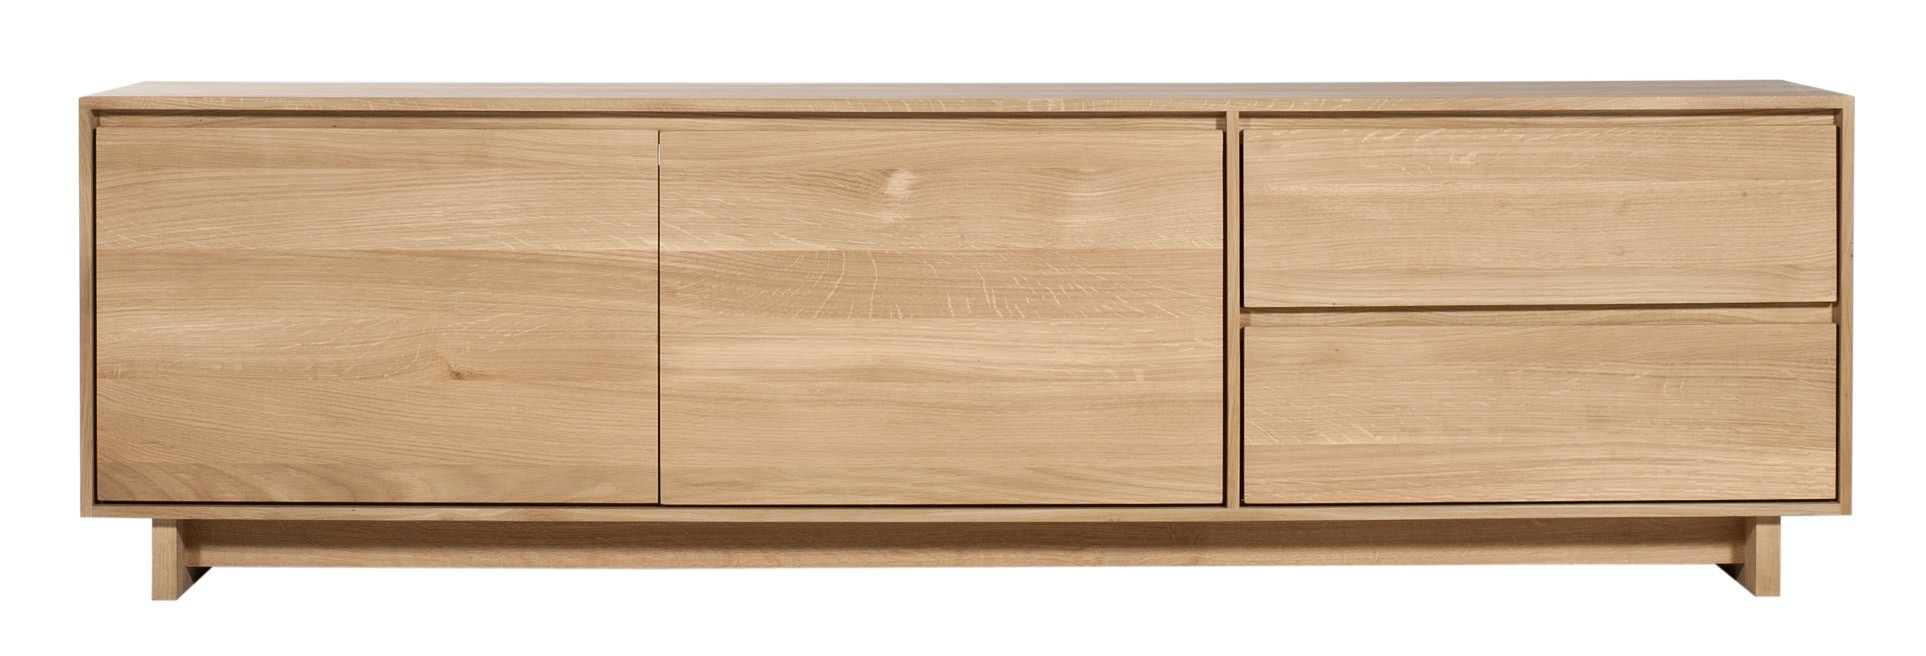 Meuble Tv Oak Wave D Ethnicraft 2 Porte 1 Porte Abattante 1  # Meuble Tv Bas Long